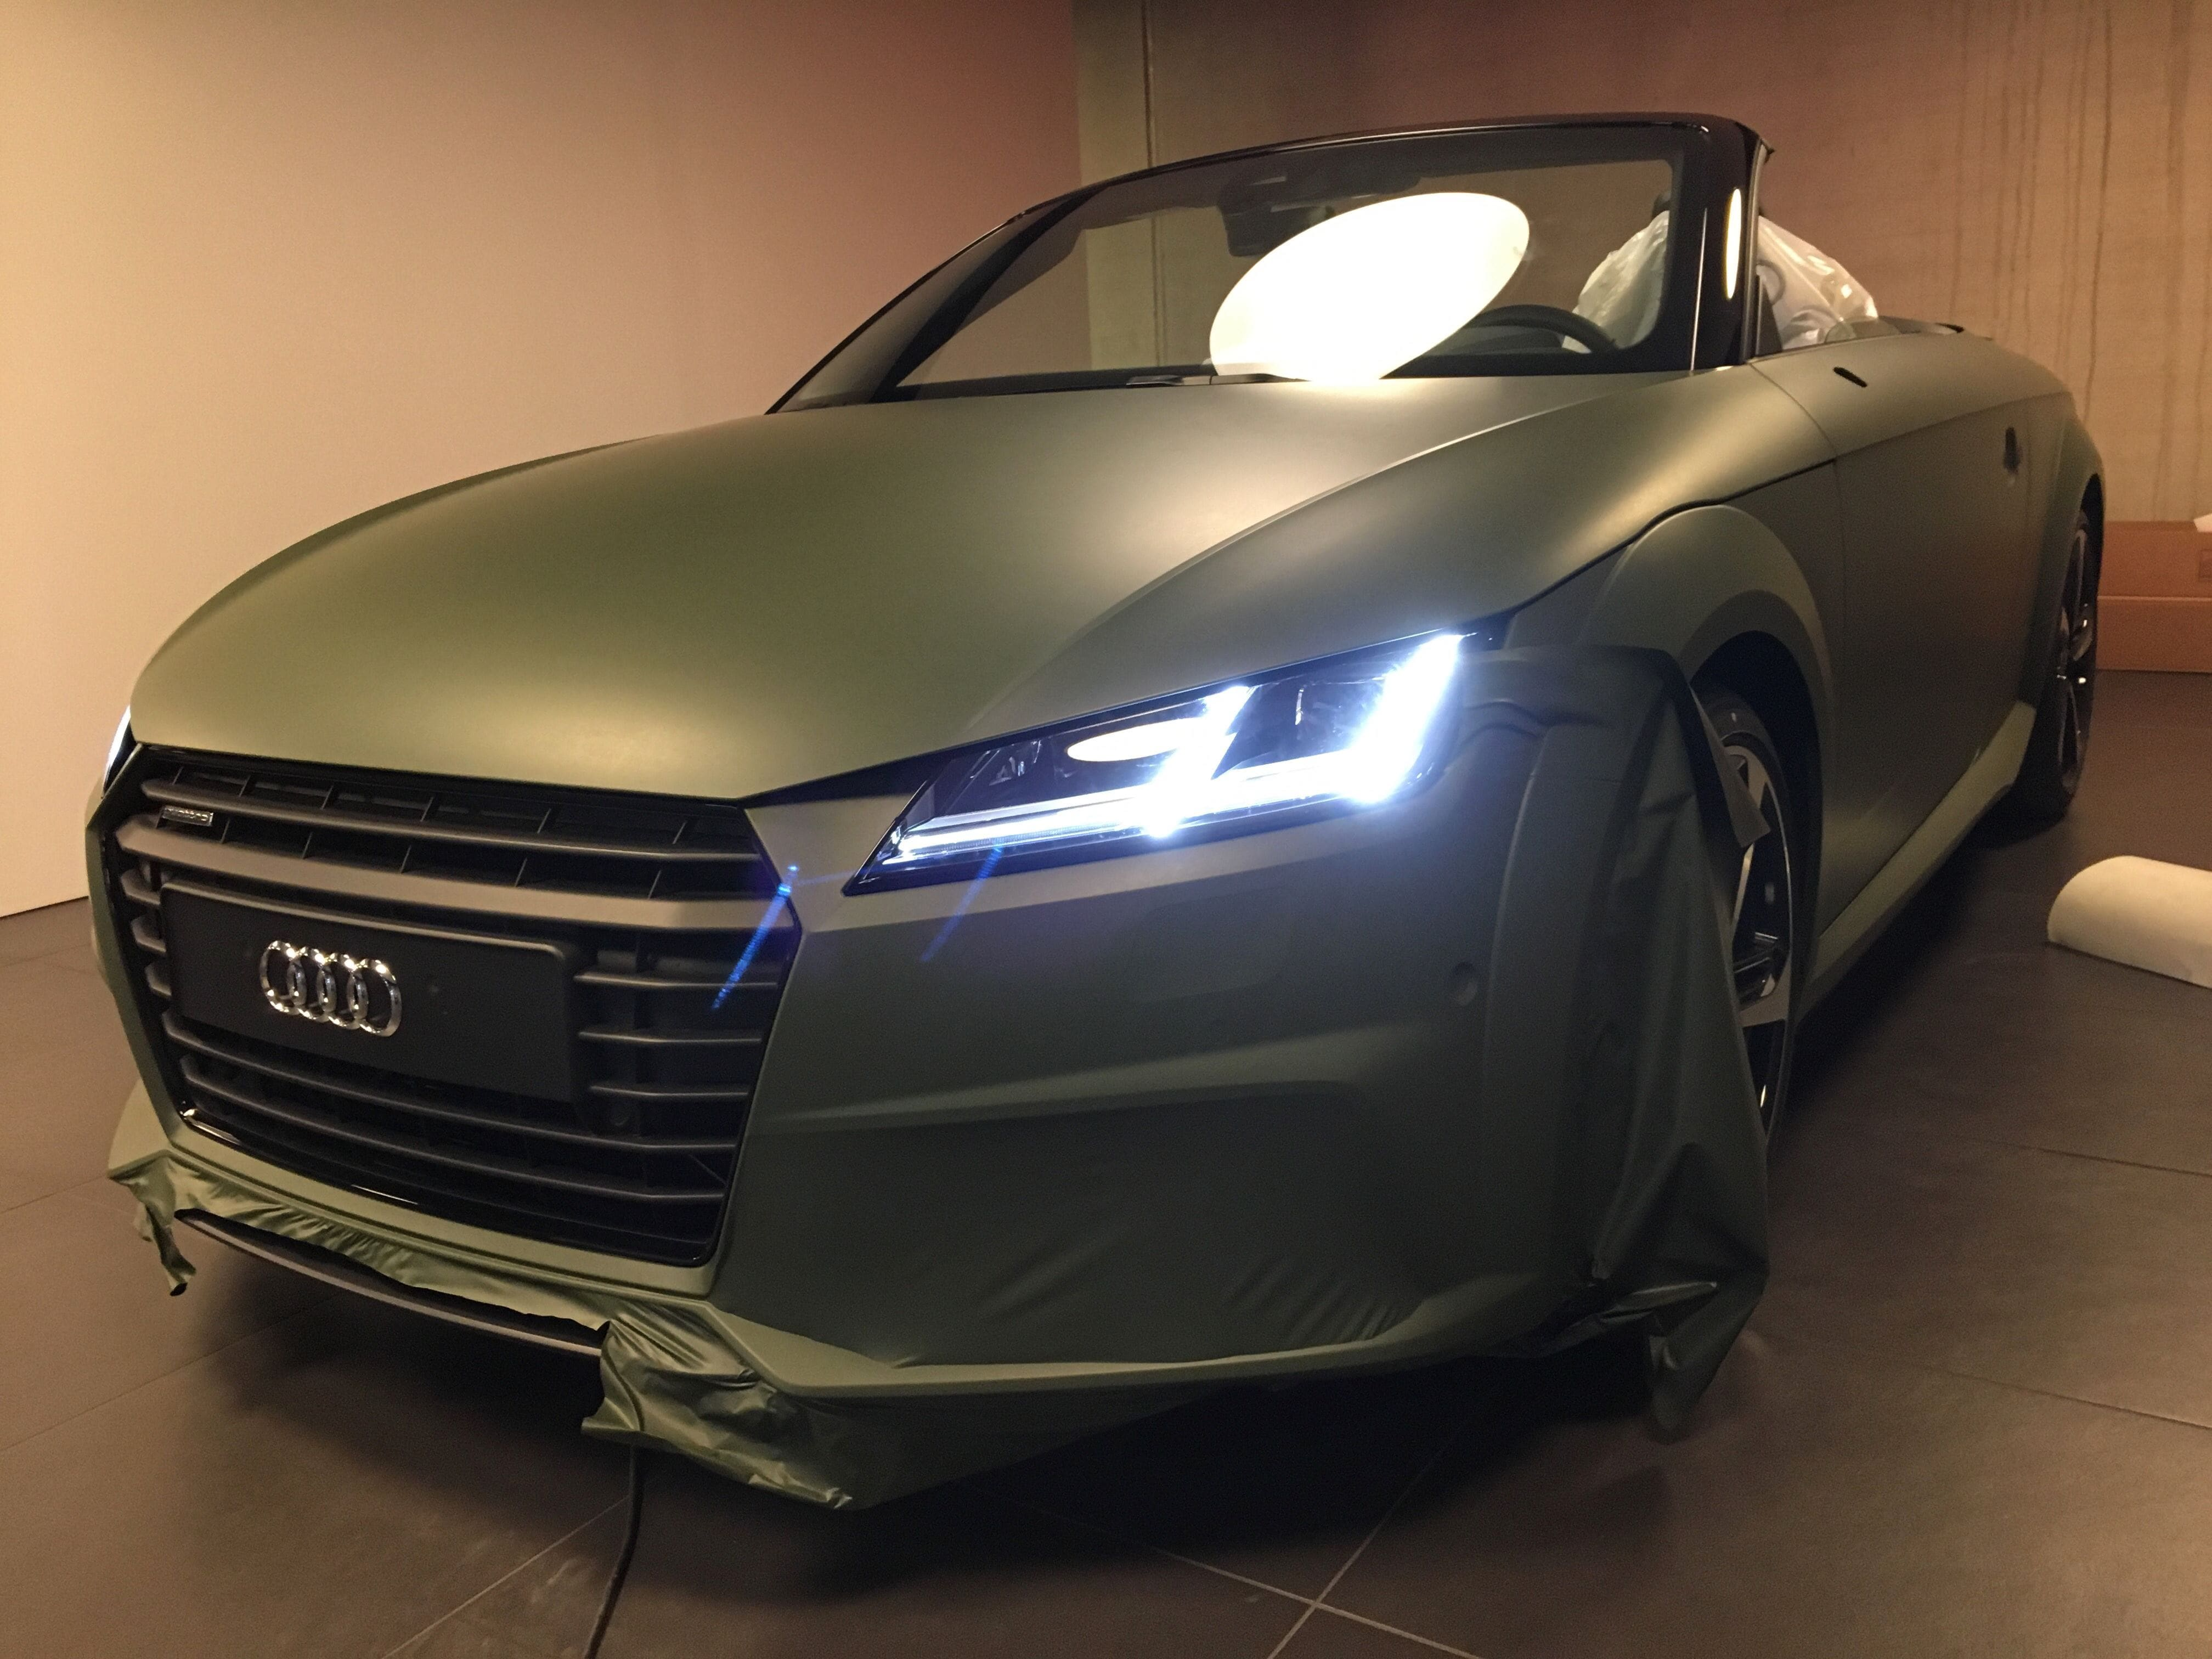 audi TT 2017 matte military green, Carwrapping door Wrapmyride.nu Foto-nr:9279, ©2021